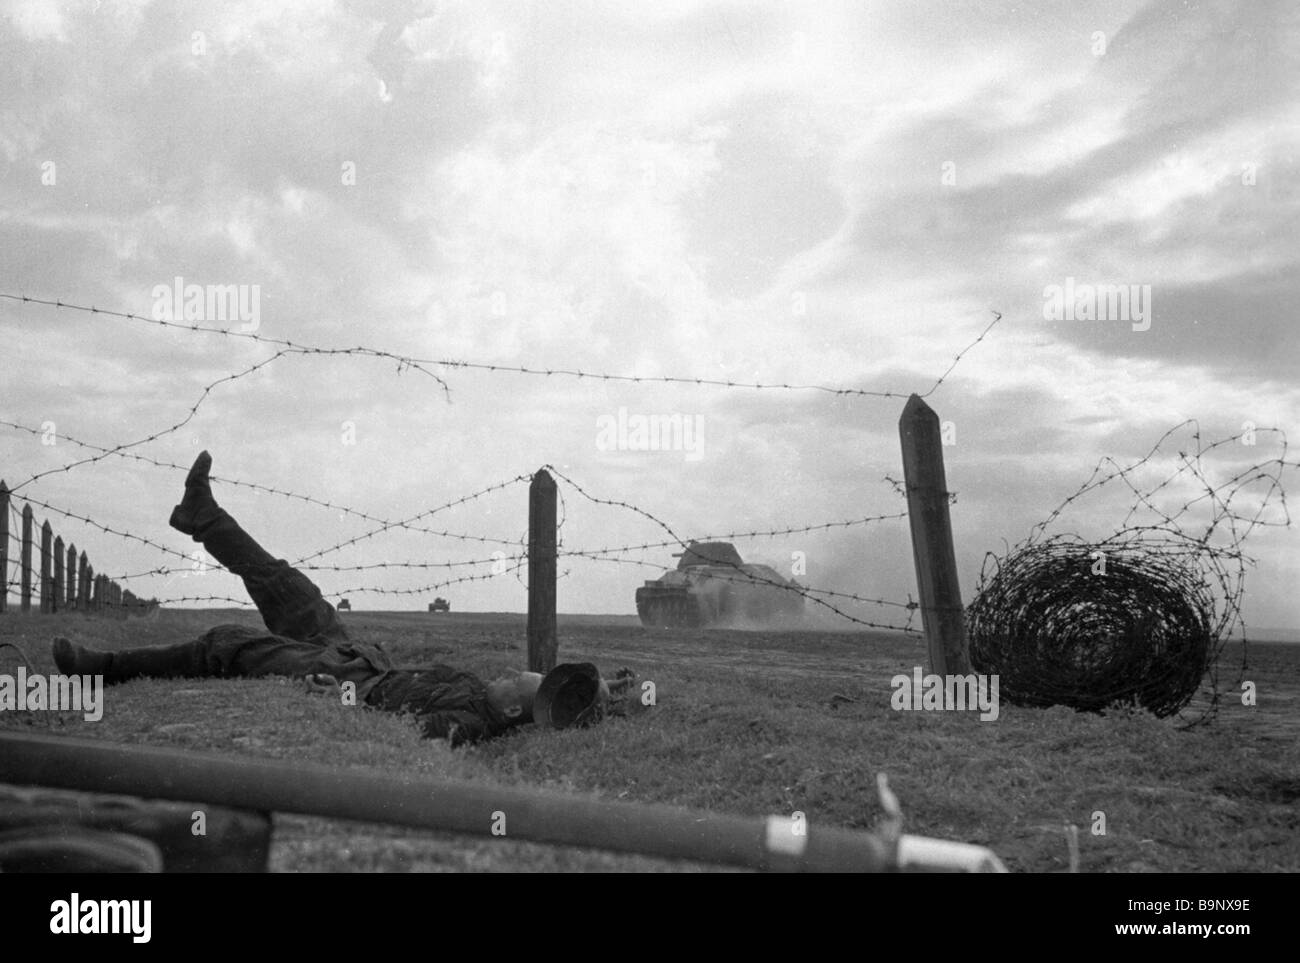 Barbed Wire Soldier Stock Photos & Barbed Wire Soldier Stock ...